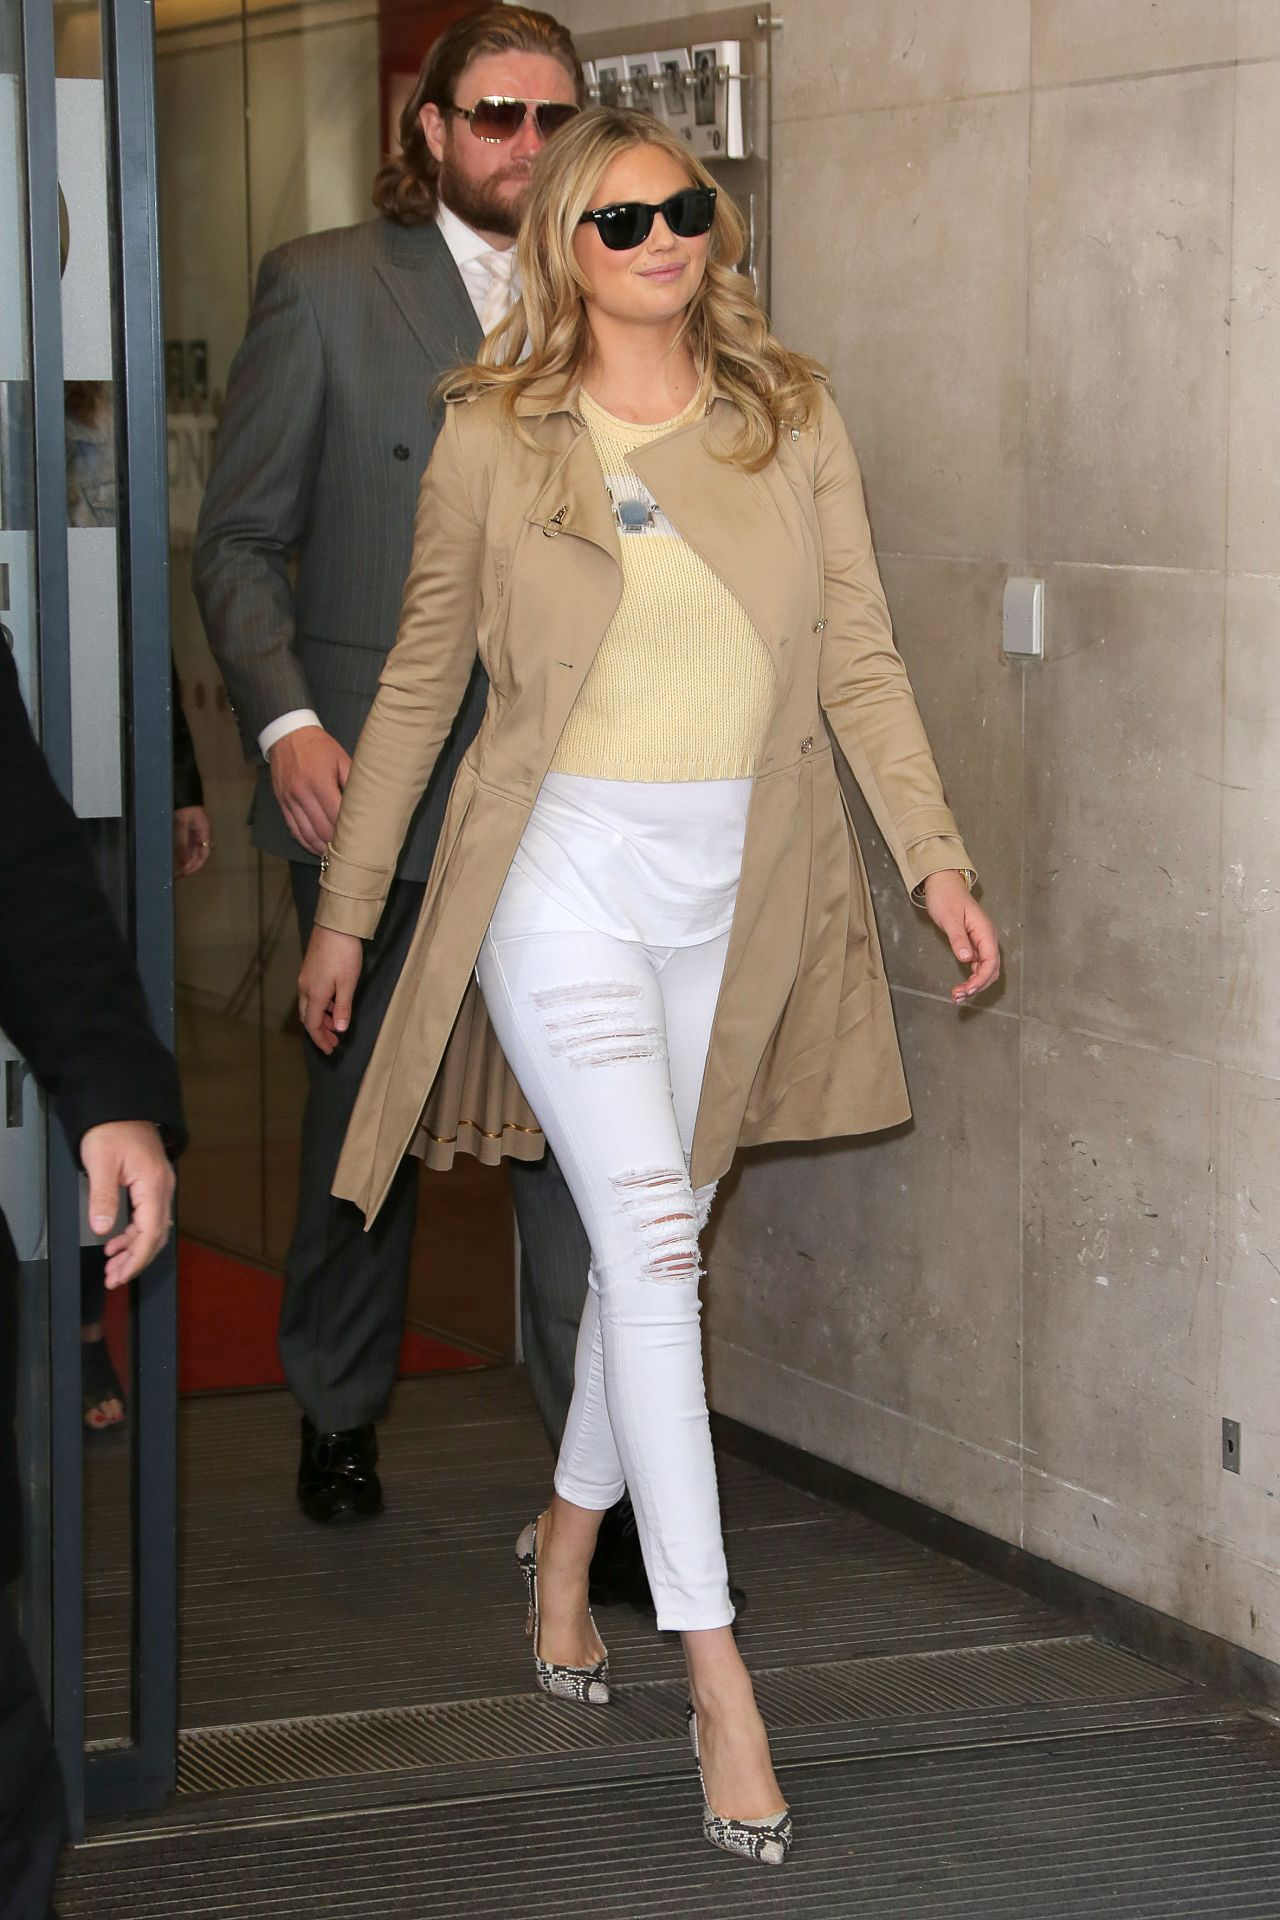 Kate Upton Street Fashion At Bbc Radio 1 In London April 2015